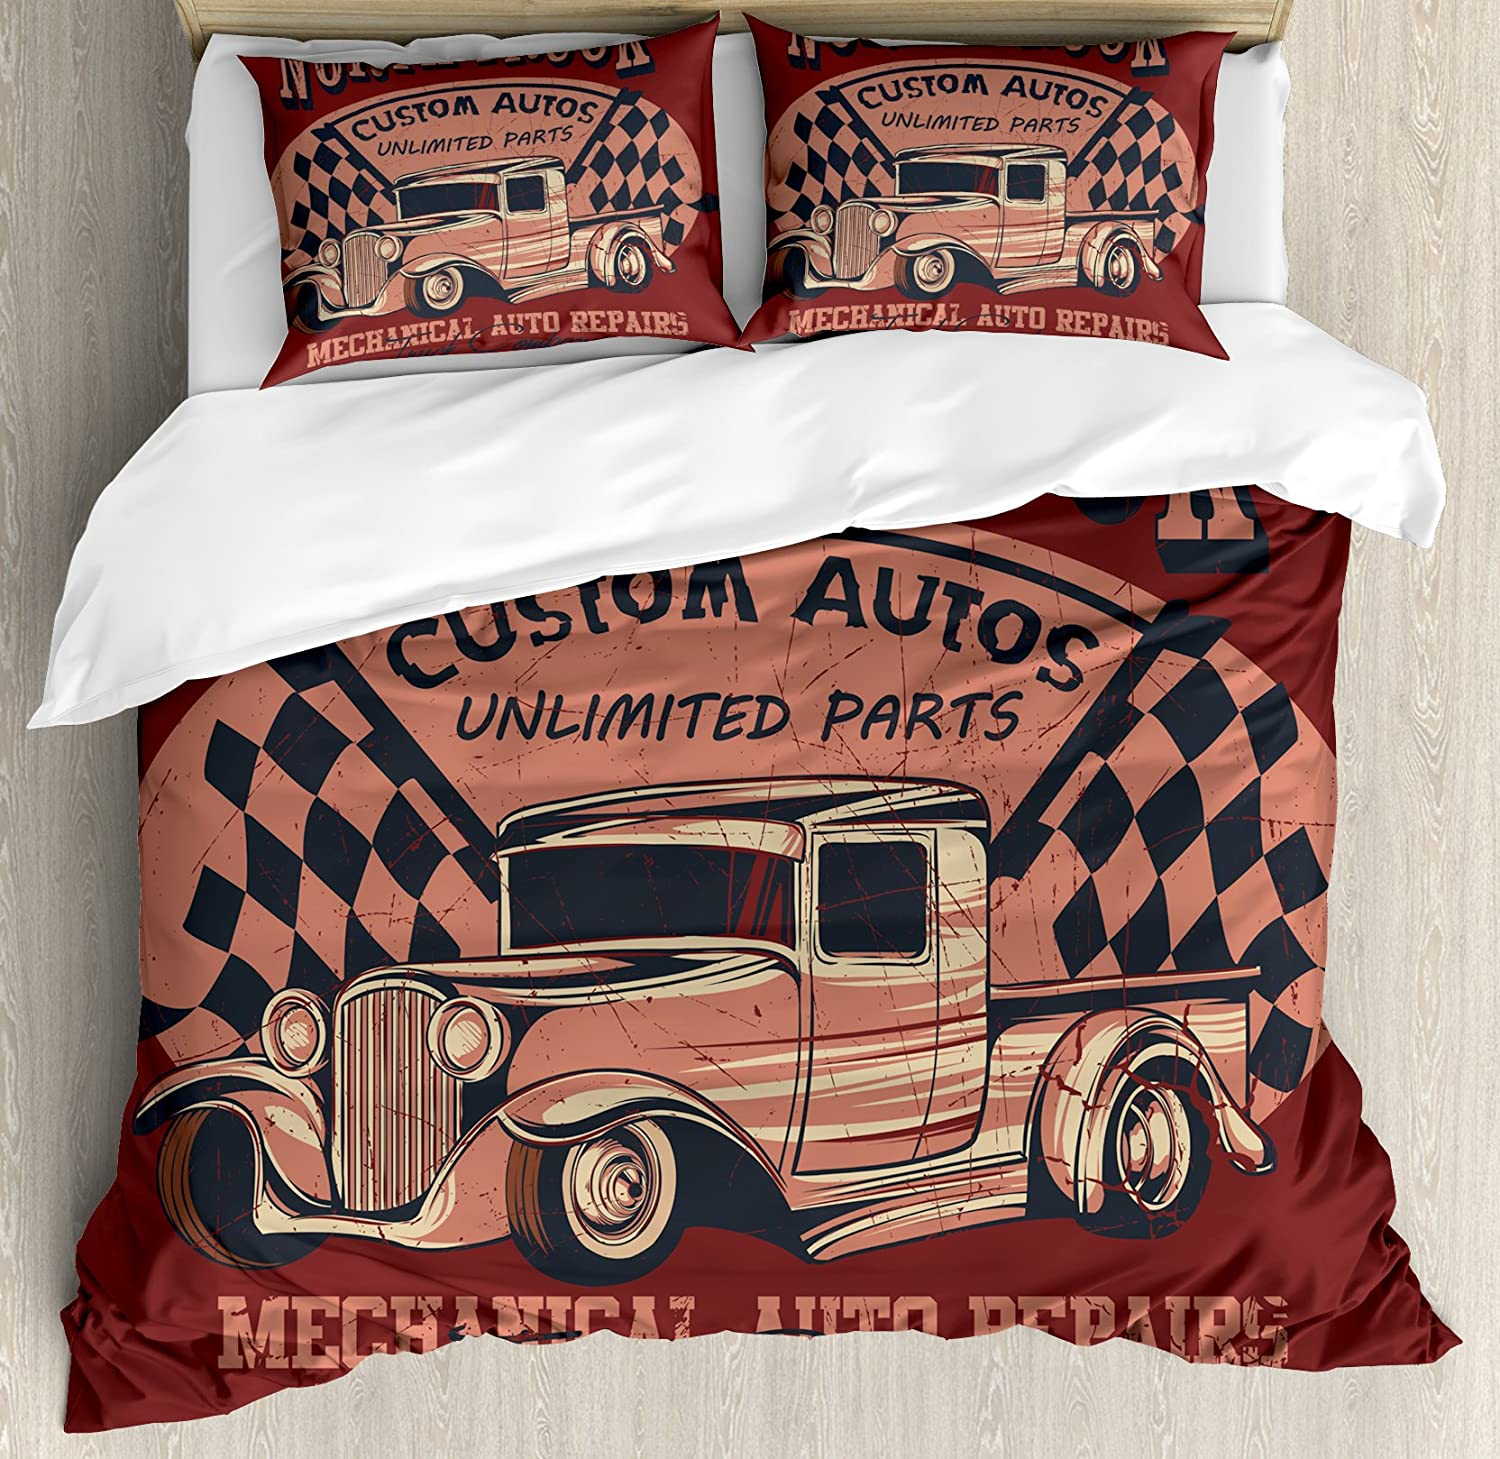 Ambesonne Man Cave Duvet Cover Set, North Truck Mechanical Auto Repairs Custom Autos Vintage Advertising, Decorative 3 Piece Bedding Set with 2 Pillow Shams, King Size, Black Maroon